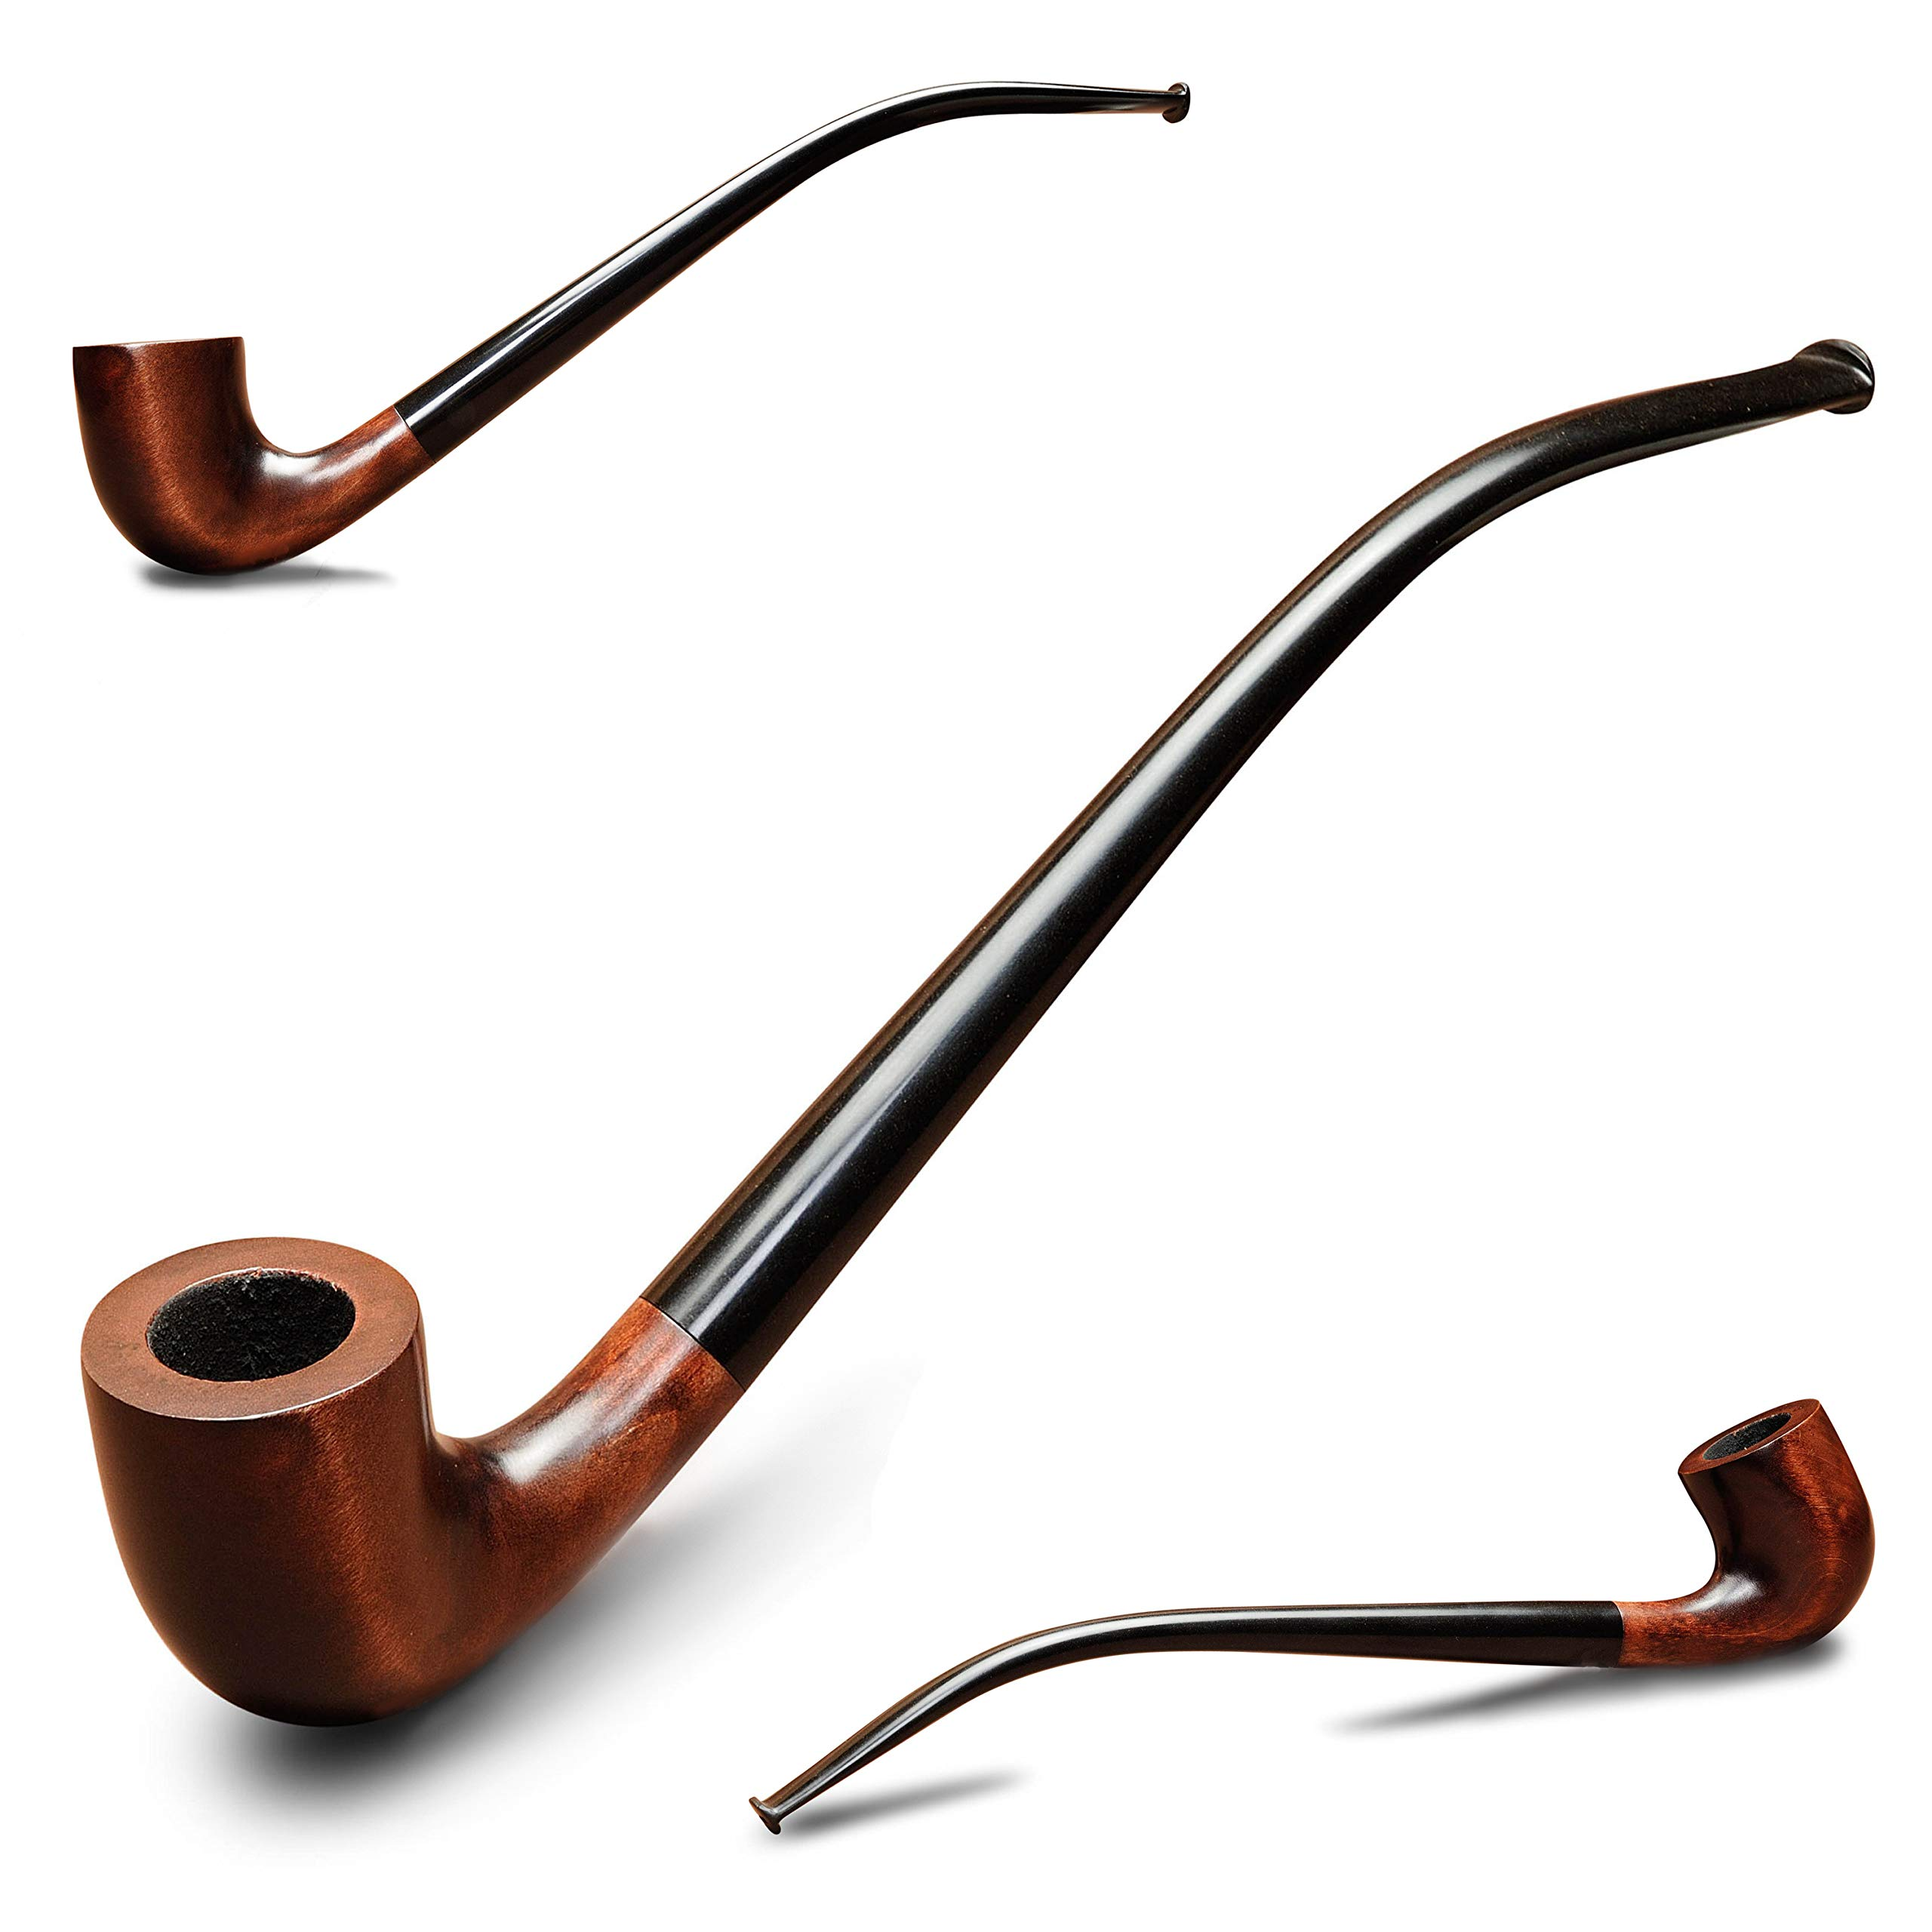 Churchwarden Smoking pipe KAF233 Long 9.5'' Gandalf style Wooden tobacco pipe from Lord of the Rings handmade by KAFpipeWorkshop